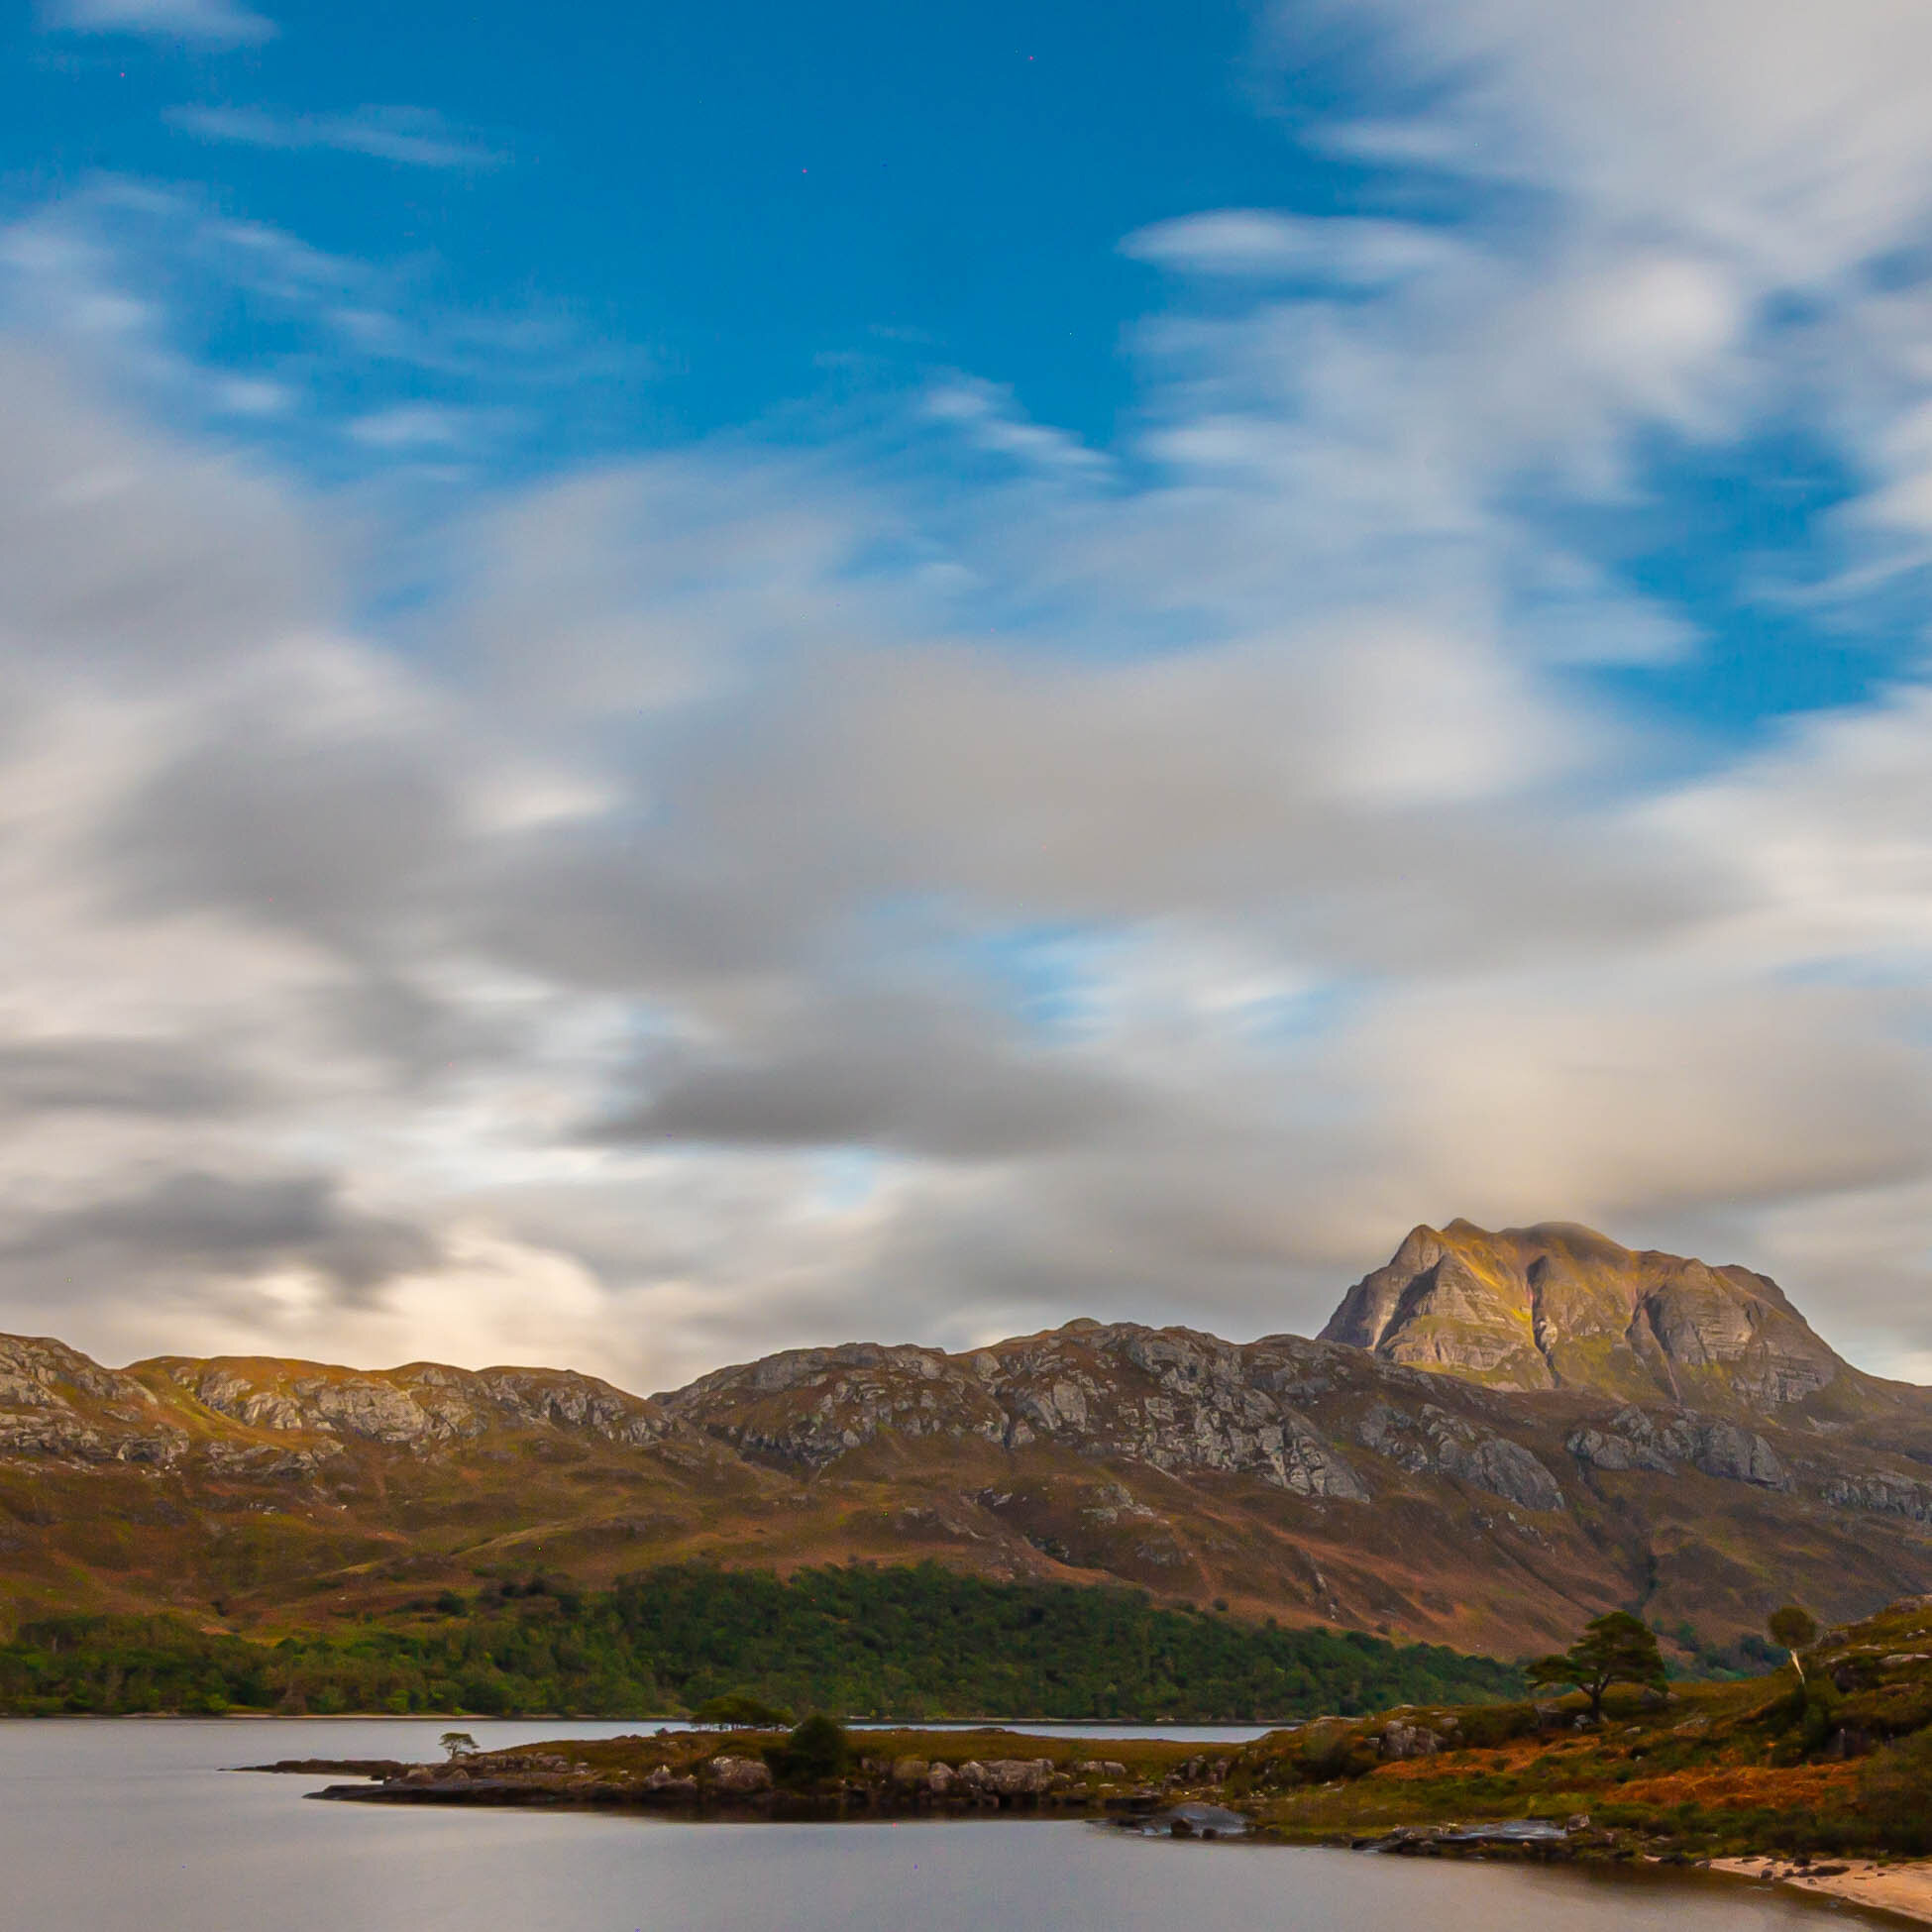 Loch Maree looking across to Slioch